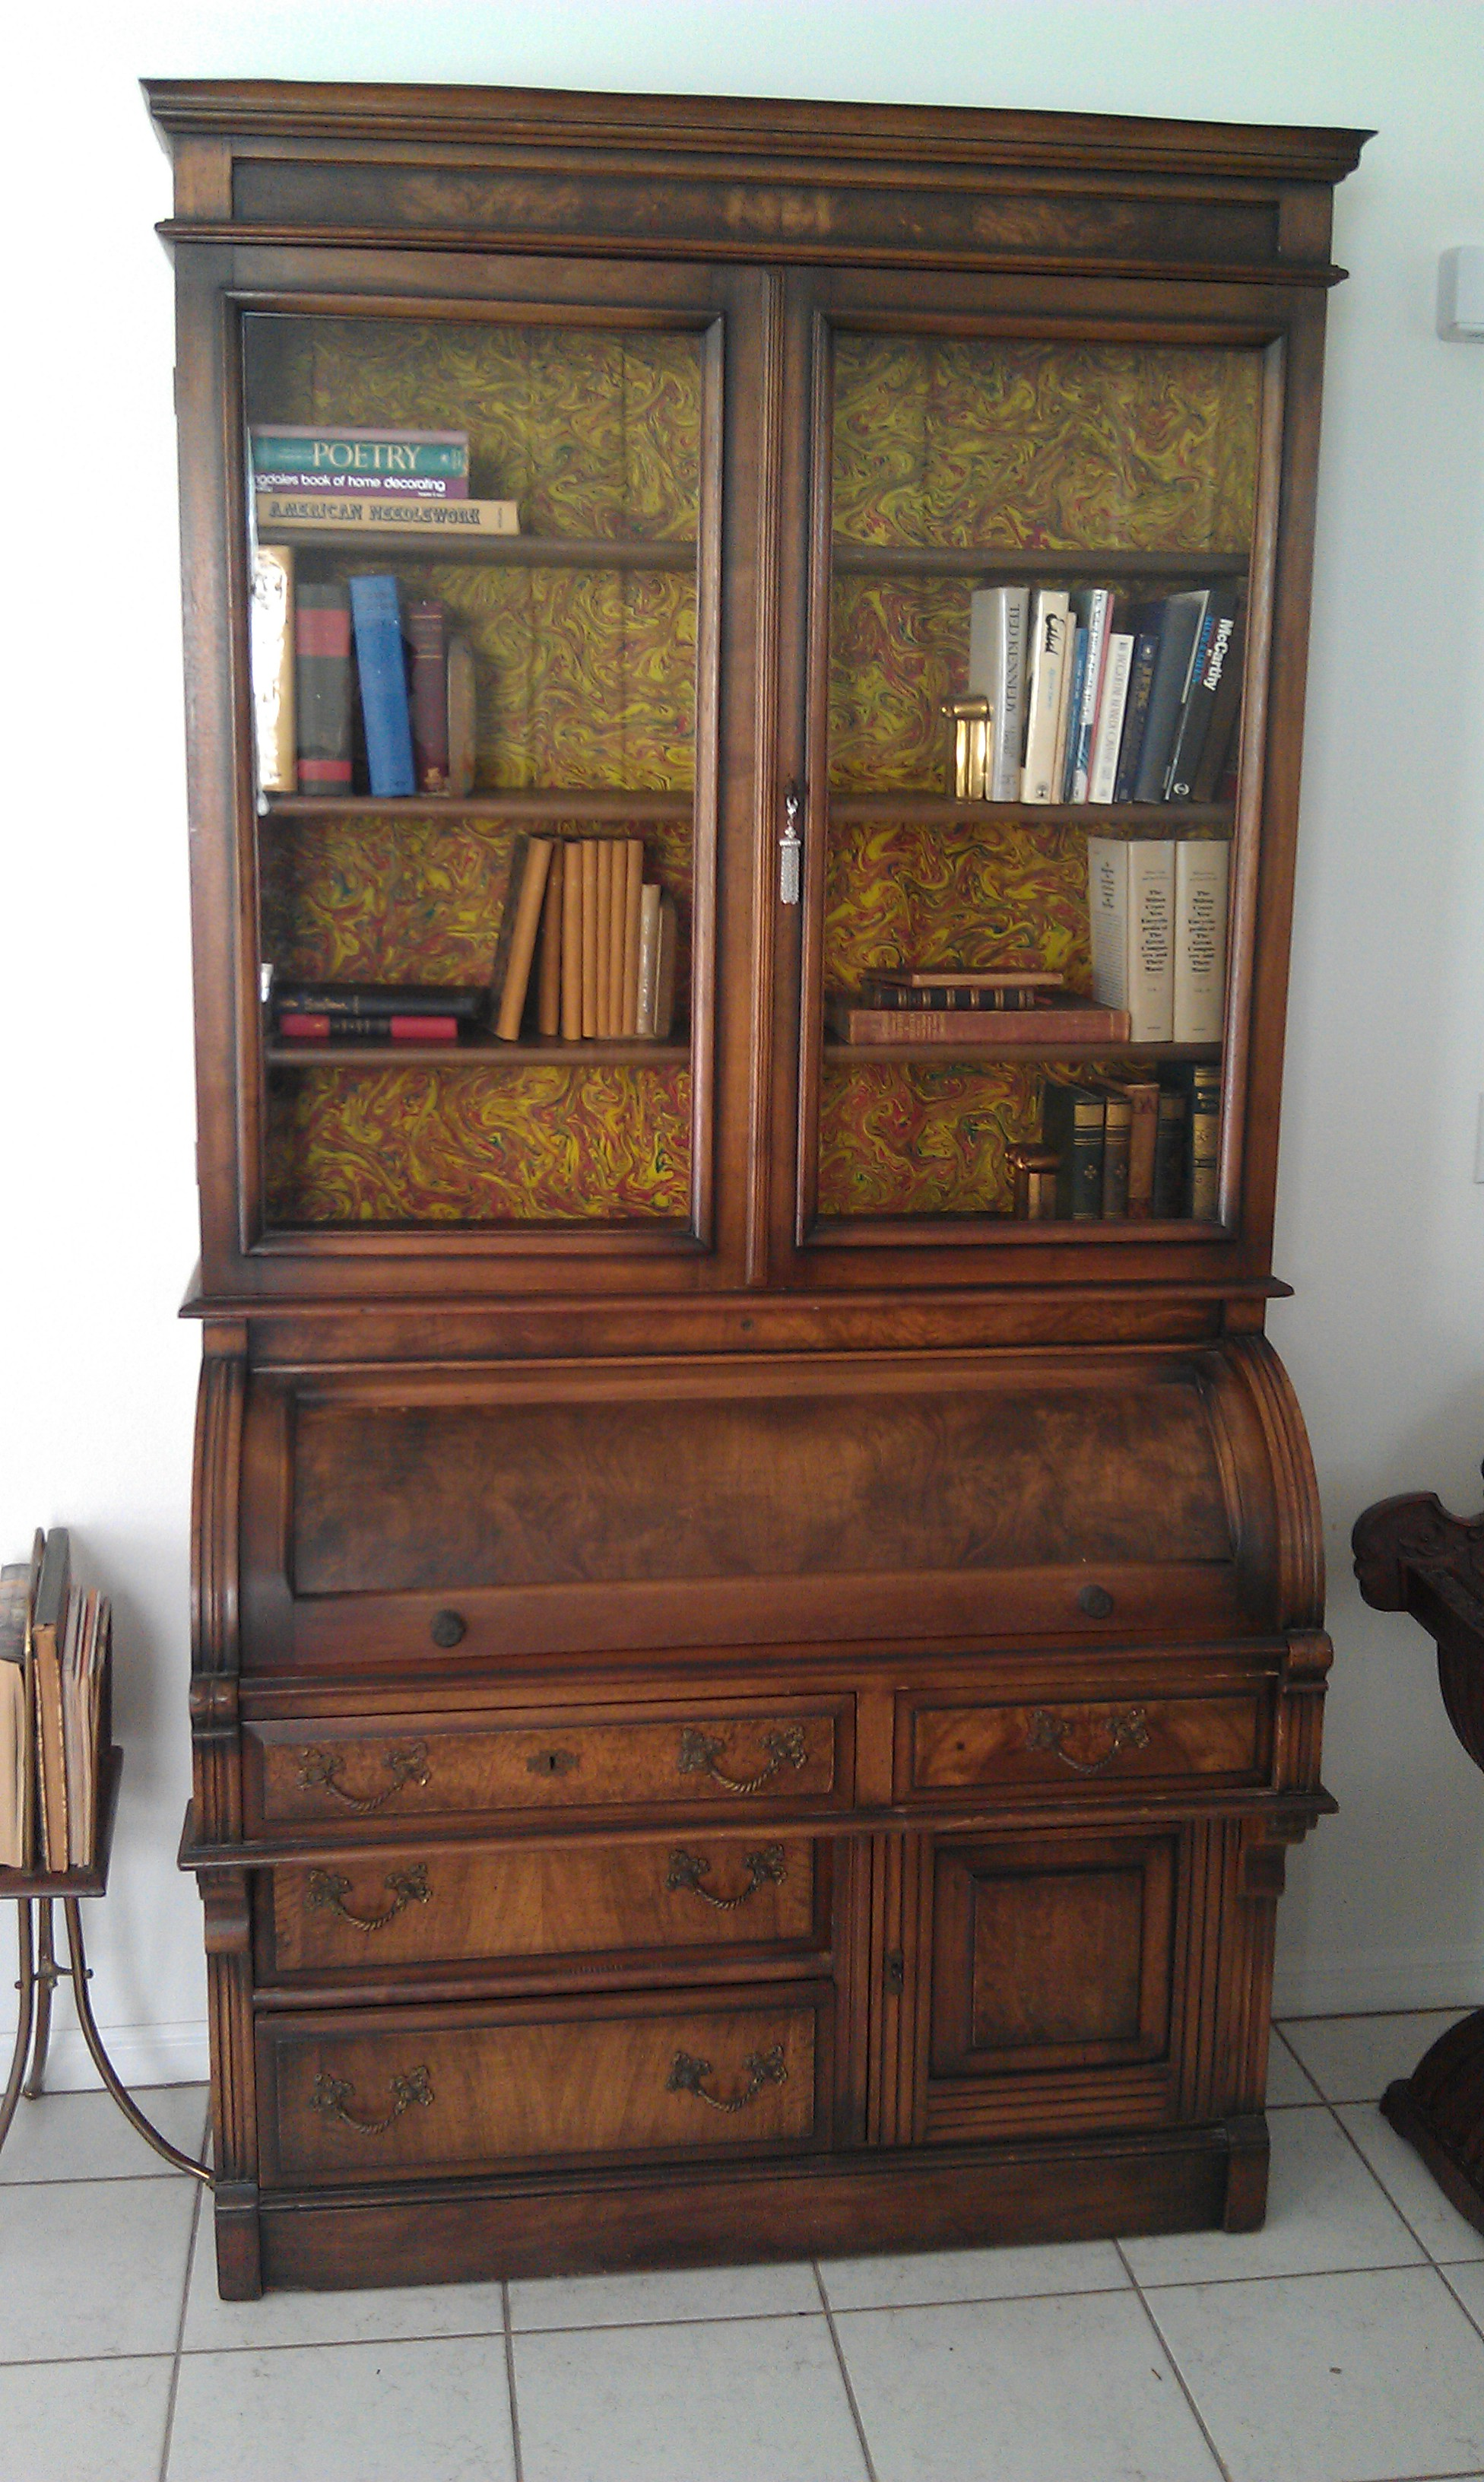 Antique secretary desk bookcase very fine 1870-1900 roll top desk For Sale | Antiques.com ...